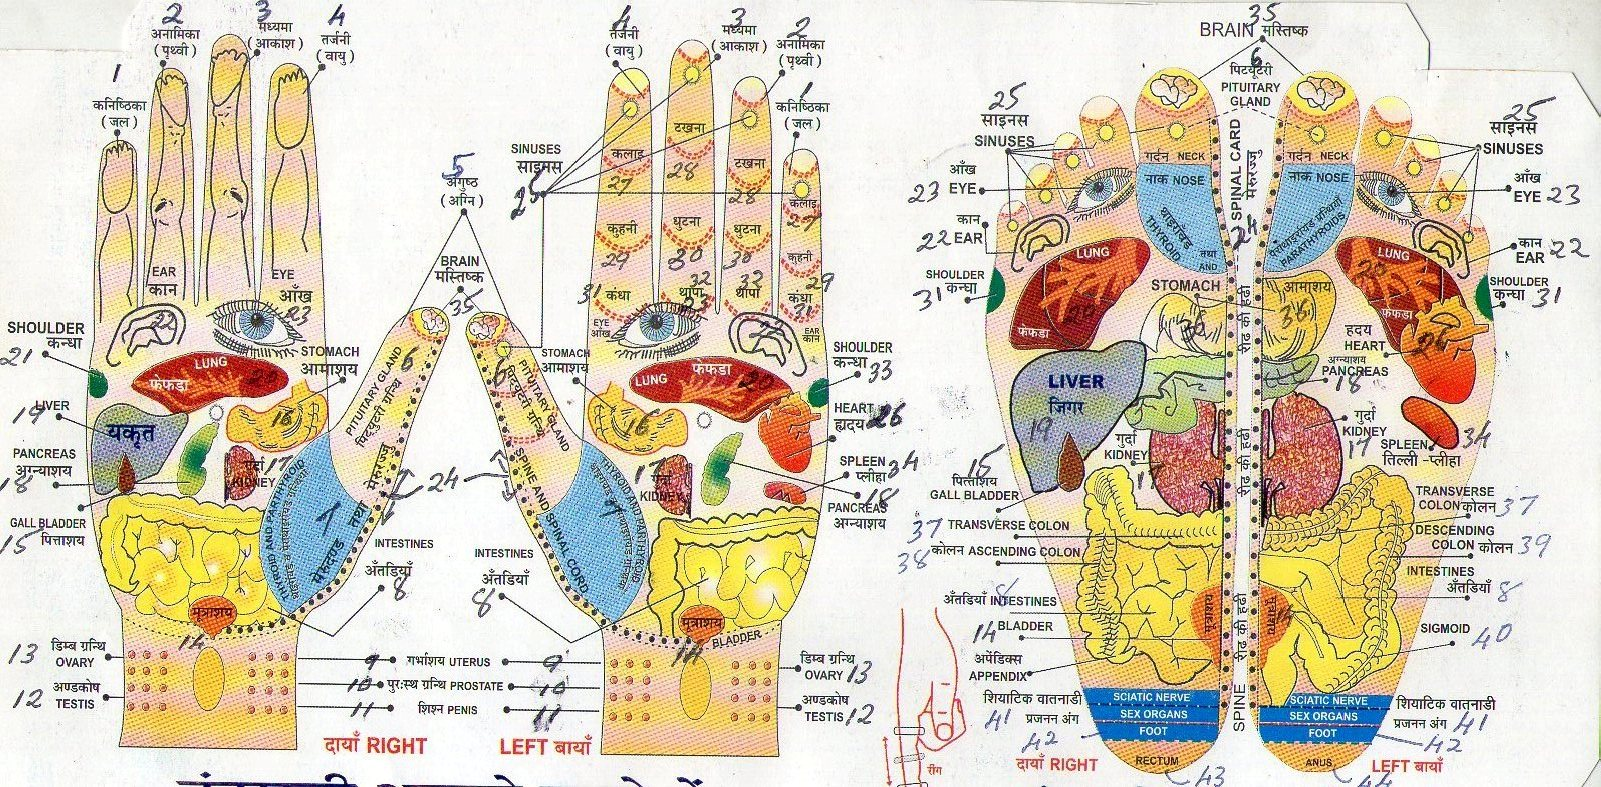 Acupressure : Acupressure points, Reflexology, Meridians